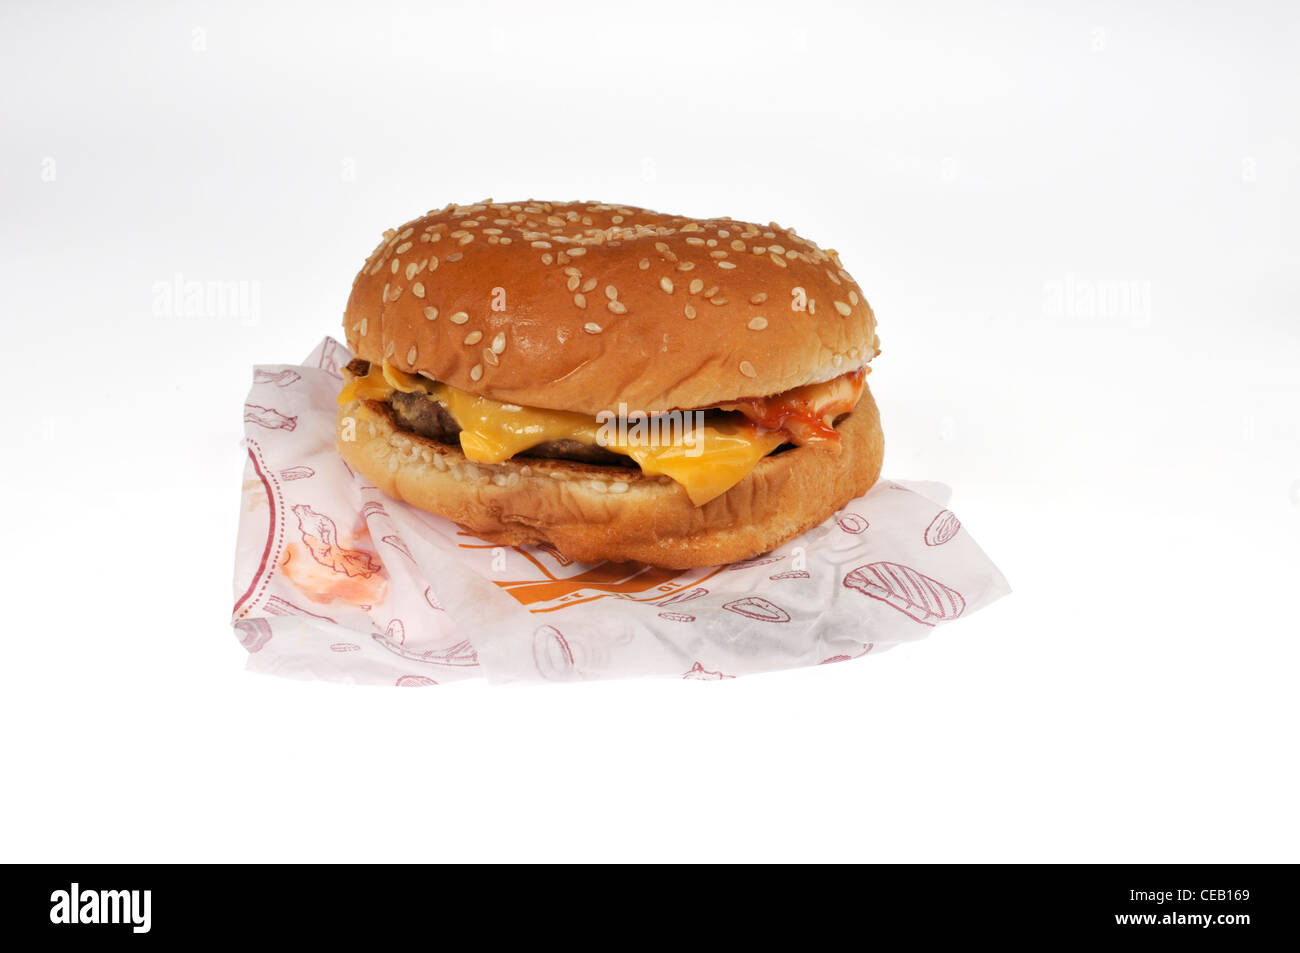 Burger King Double Cheeseburger Burger King Double Cheeseburger With Wrapper Packaging On